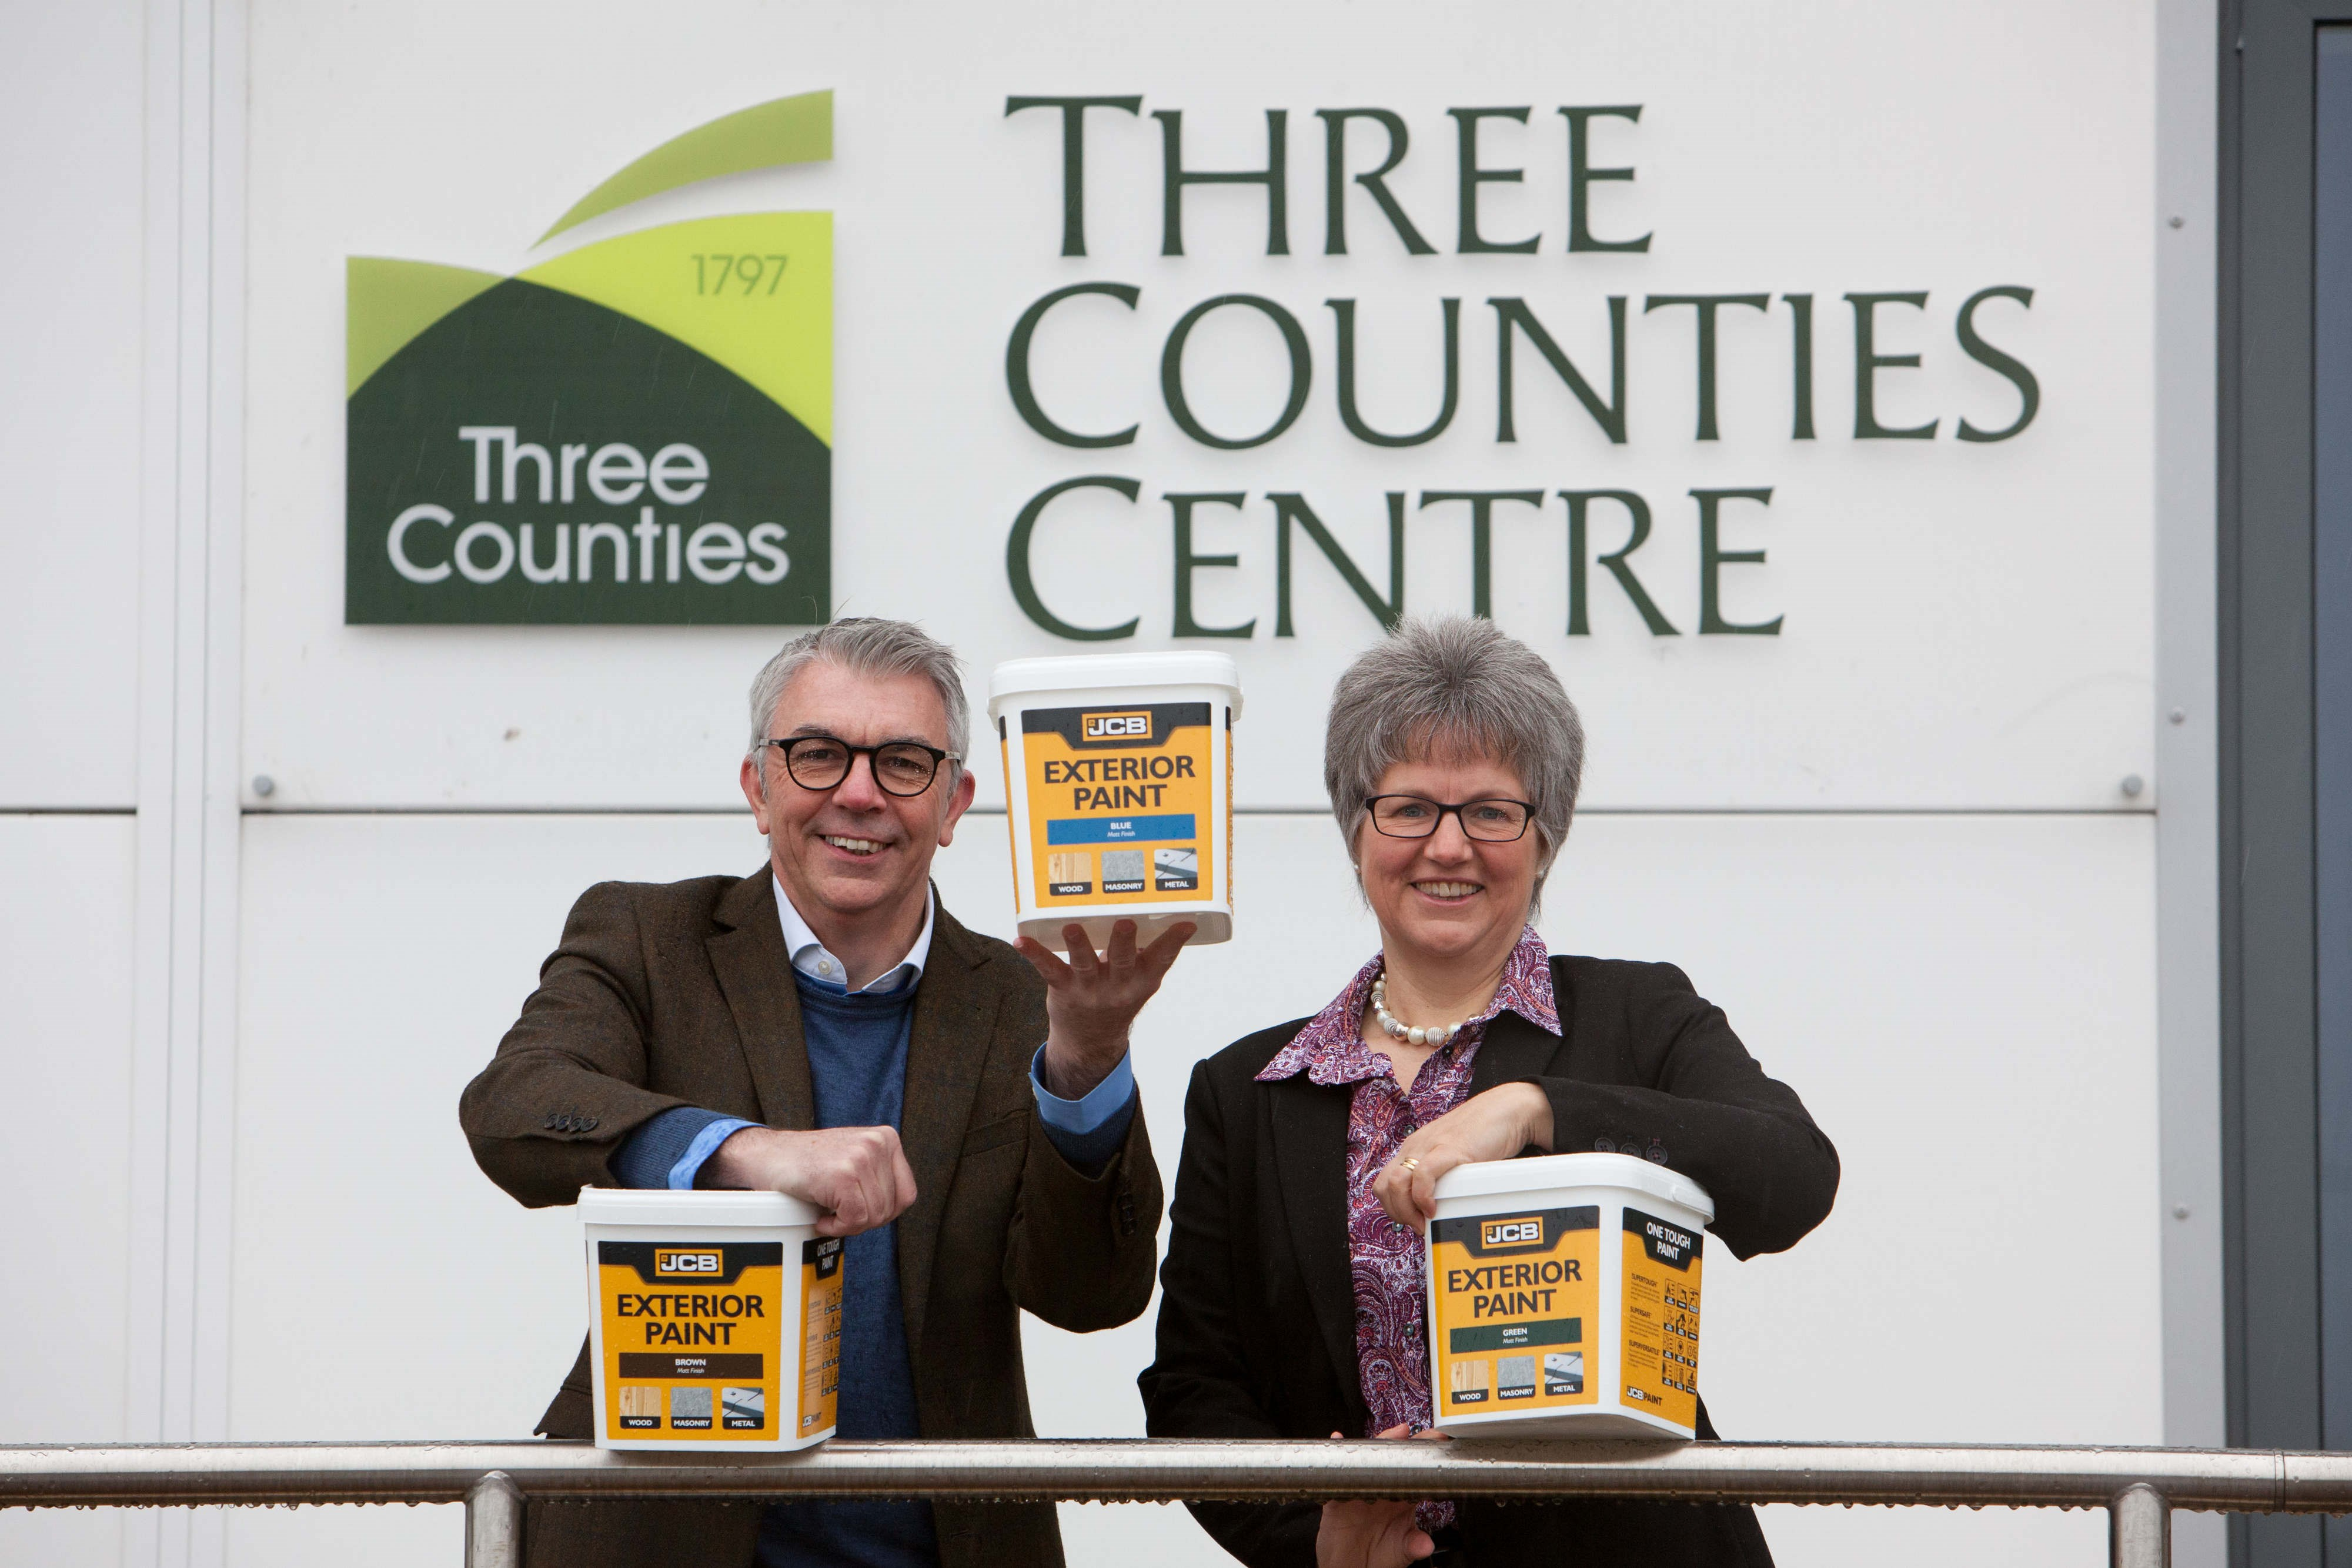 Royal Three Countie Show - JCB Paint.jpg